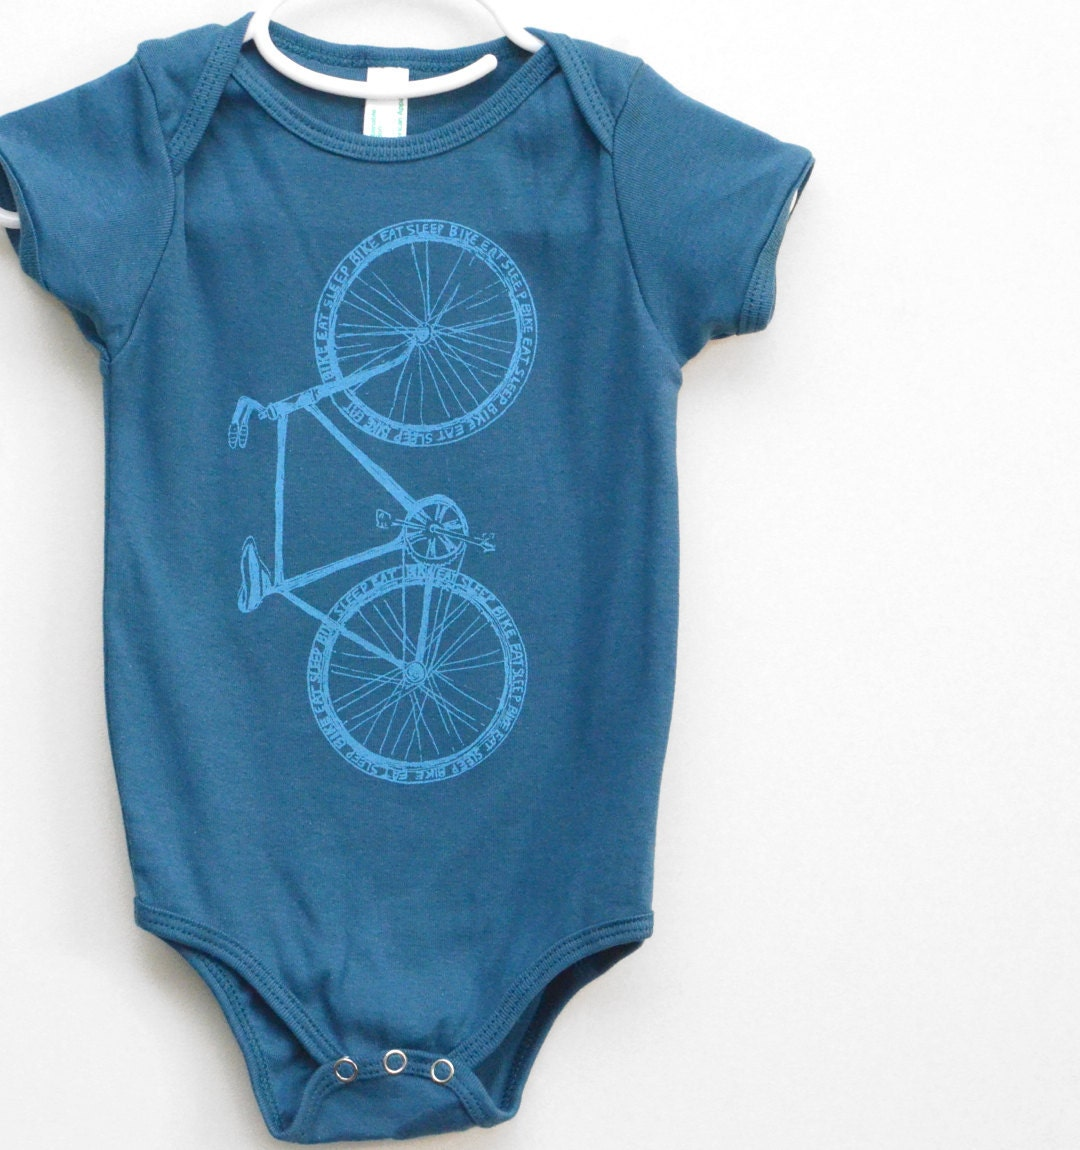 Kids' Cycle Clothing. Get your kids riding in style and comfortable with our wide selection of kids' cycle clothing. Kids' cycle clothing is just like the adult clothes, just smaller, bringing all the high performance technologies and materials to the little ones so .